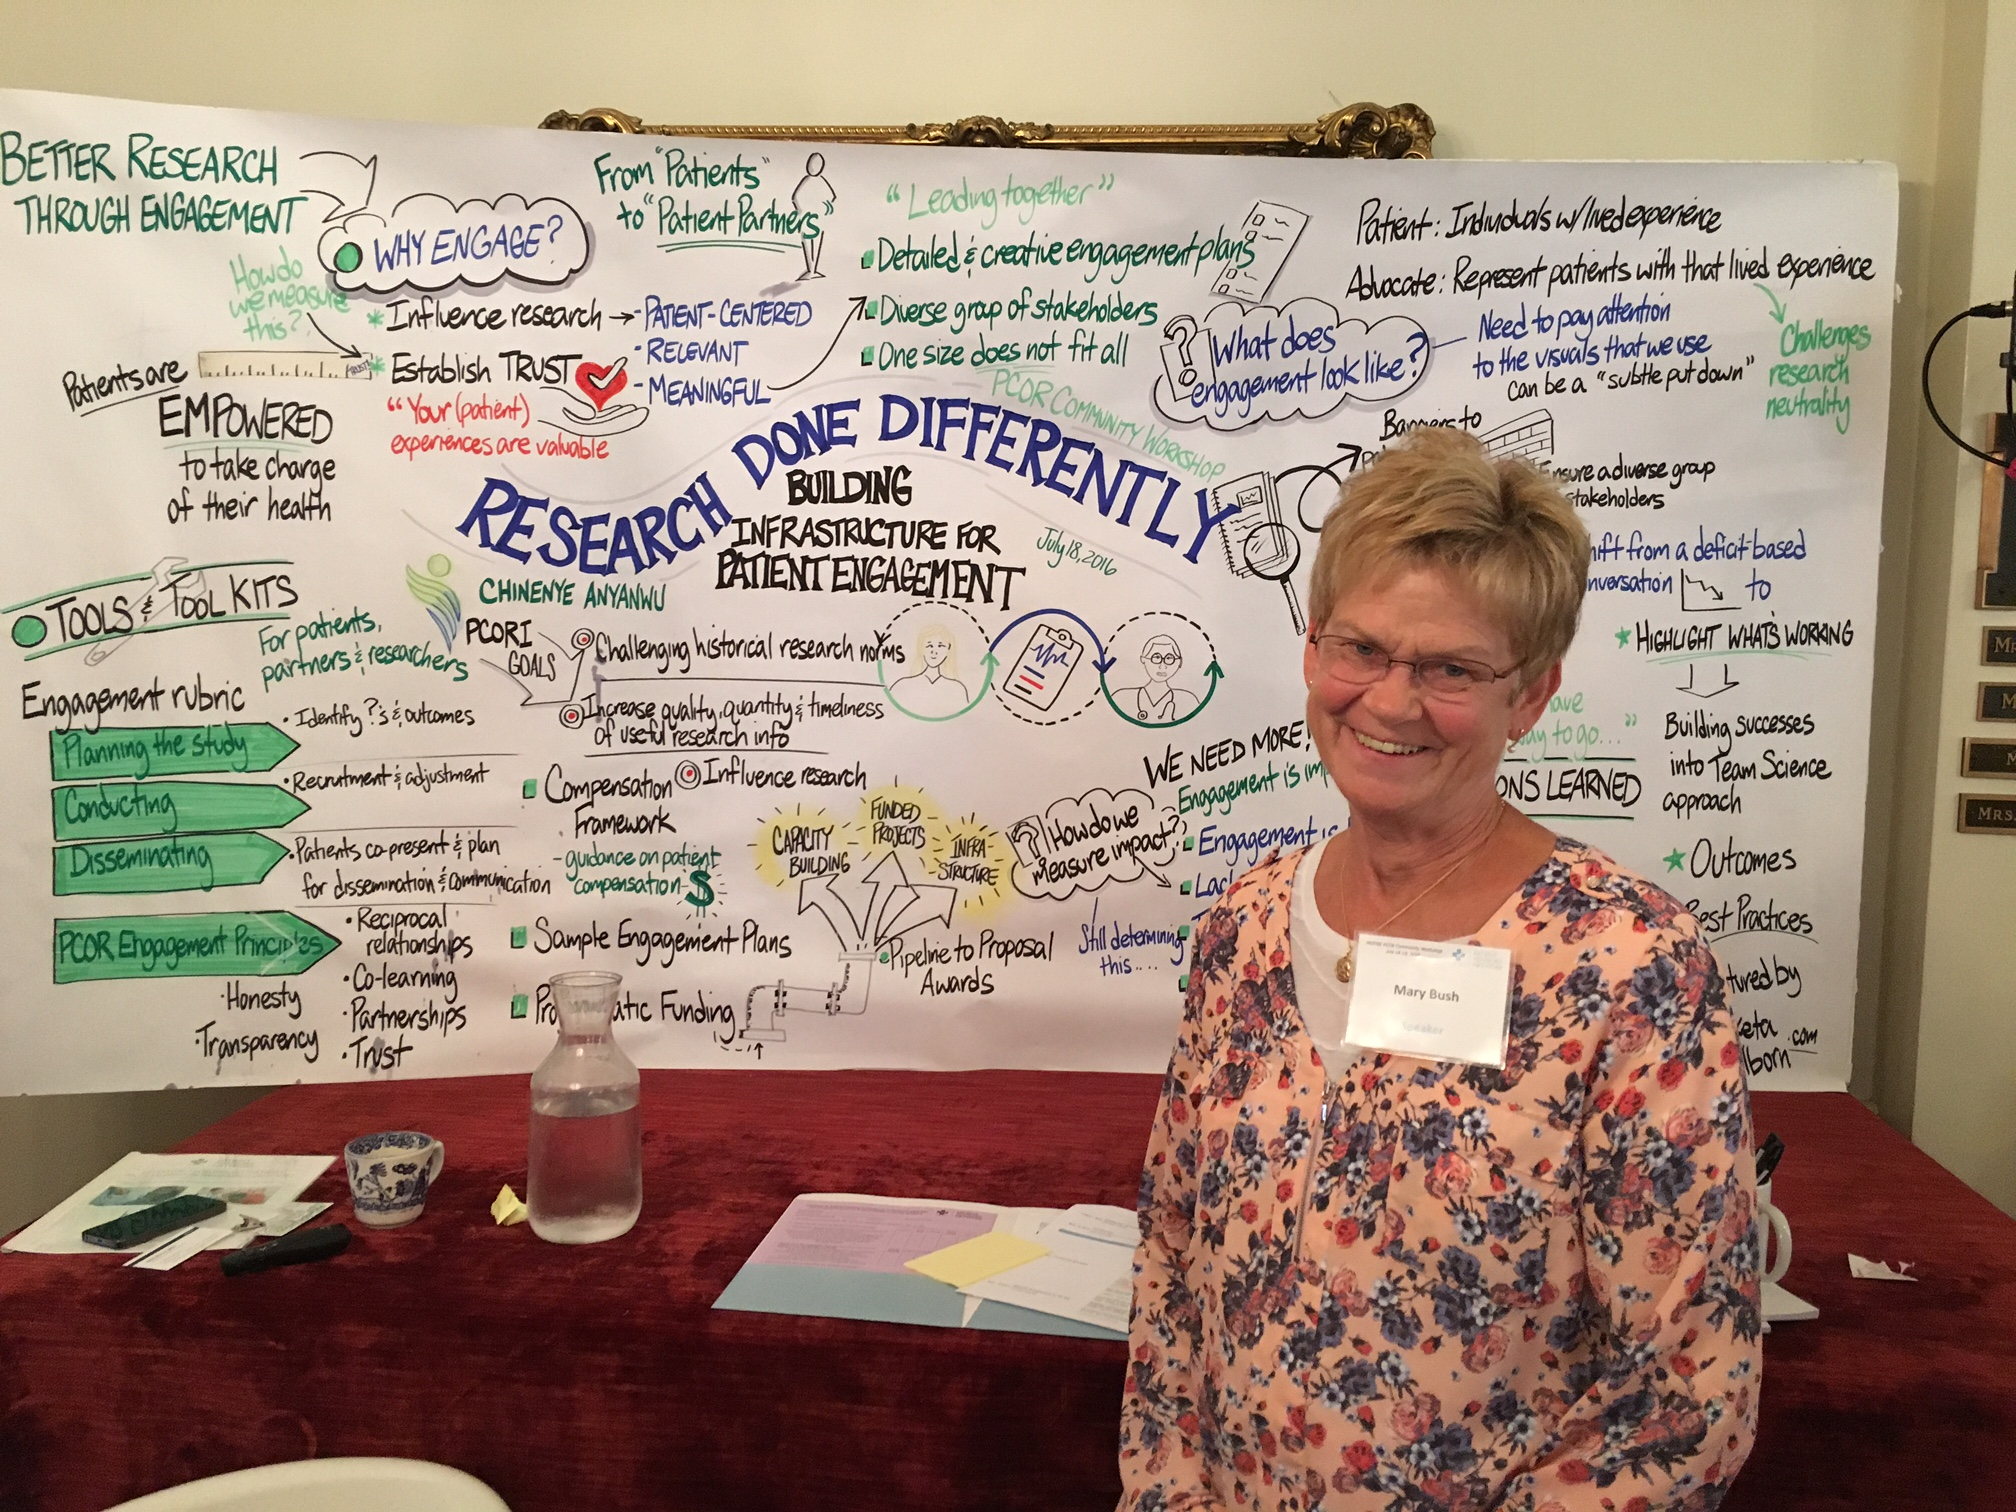 Mary Bush, a patient investigator, stands in front of a visual depiction of a discussion she participated in about patient engagement in research.